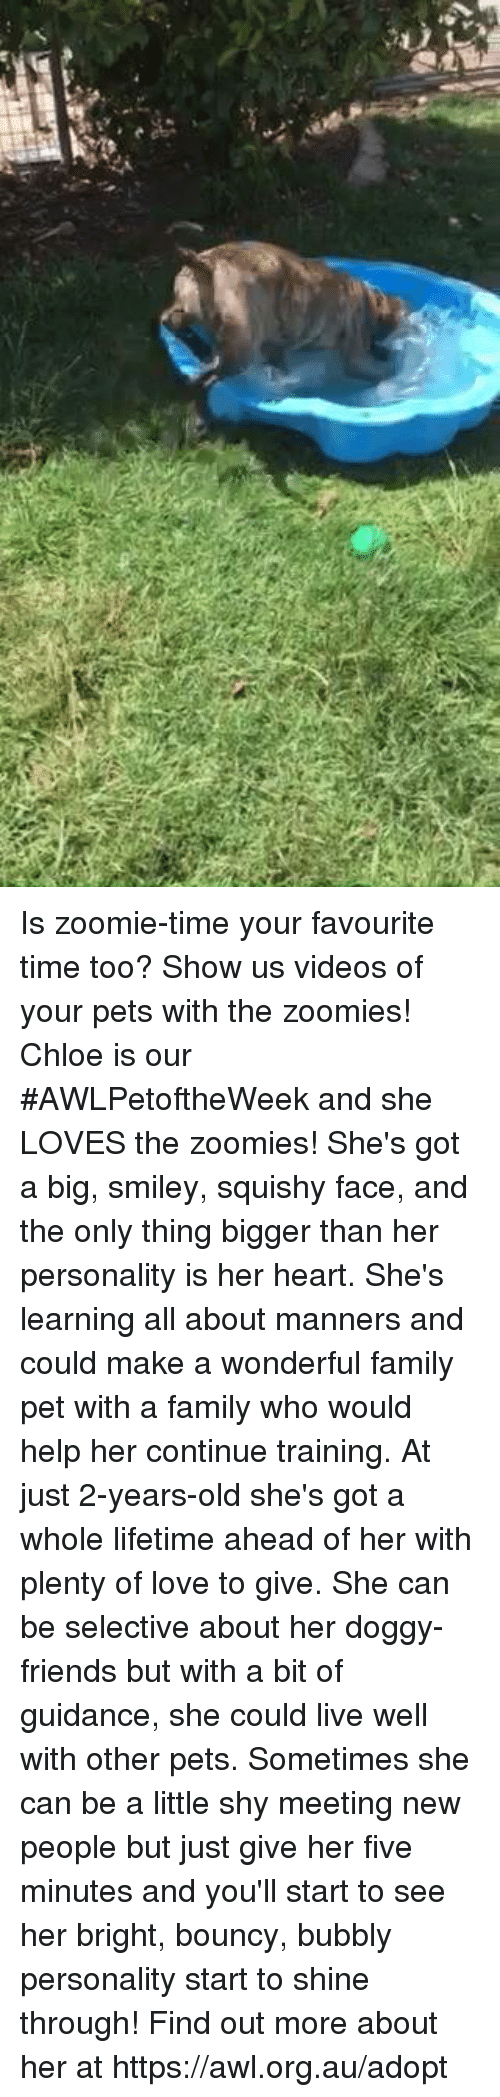 Family, Friends, and Love: Is zoomie-time your favourite time too? Show us videos of your pets with the zoomies! Chloe is our #AWLPetoftheWeek and she LOVES the zoomies!   She's got a big, smiley, squishy face, and the only thing bigger than her personality is her heart.   She's learning all about manners and could make a wonderful family pet with a family who would help her continue training.  At just 2-years-old she's got a whole lifetime ahead of her with plenty of love to give.   She can be selective about her doggy-friends but with a bit of guidance, she could live well with other pets.   Sometimes she can be a little shy meeting new people but just give her five minutes and you'll start to see her bright, bouncy, bubbly personality start to shine through!   Find out more about her at https://awl.org.au/adopt